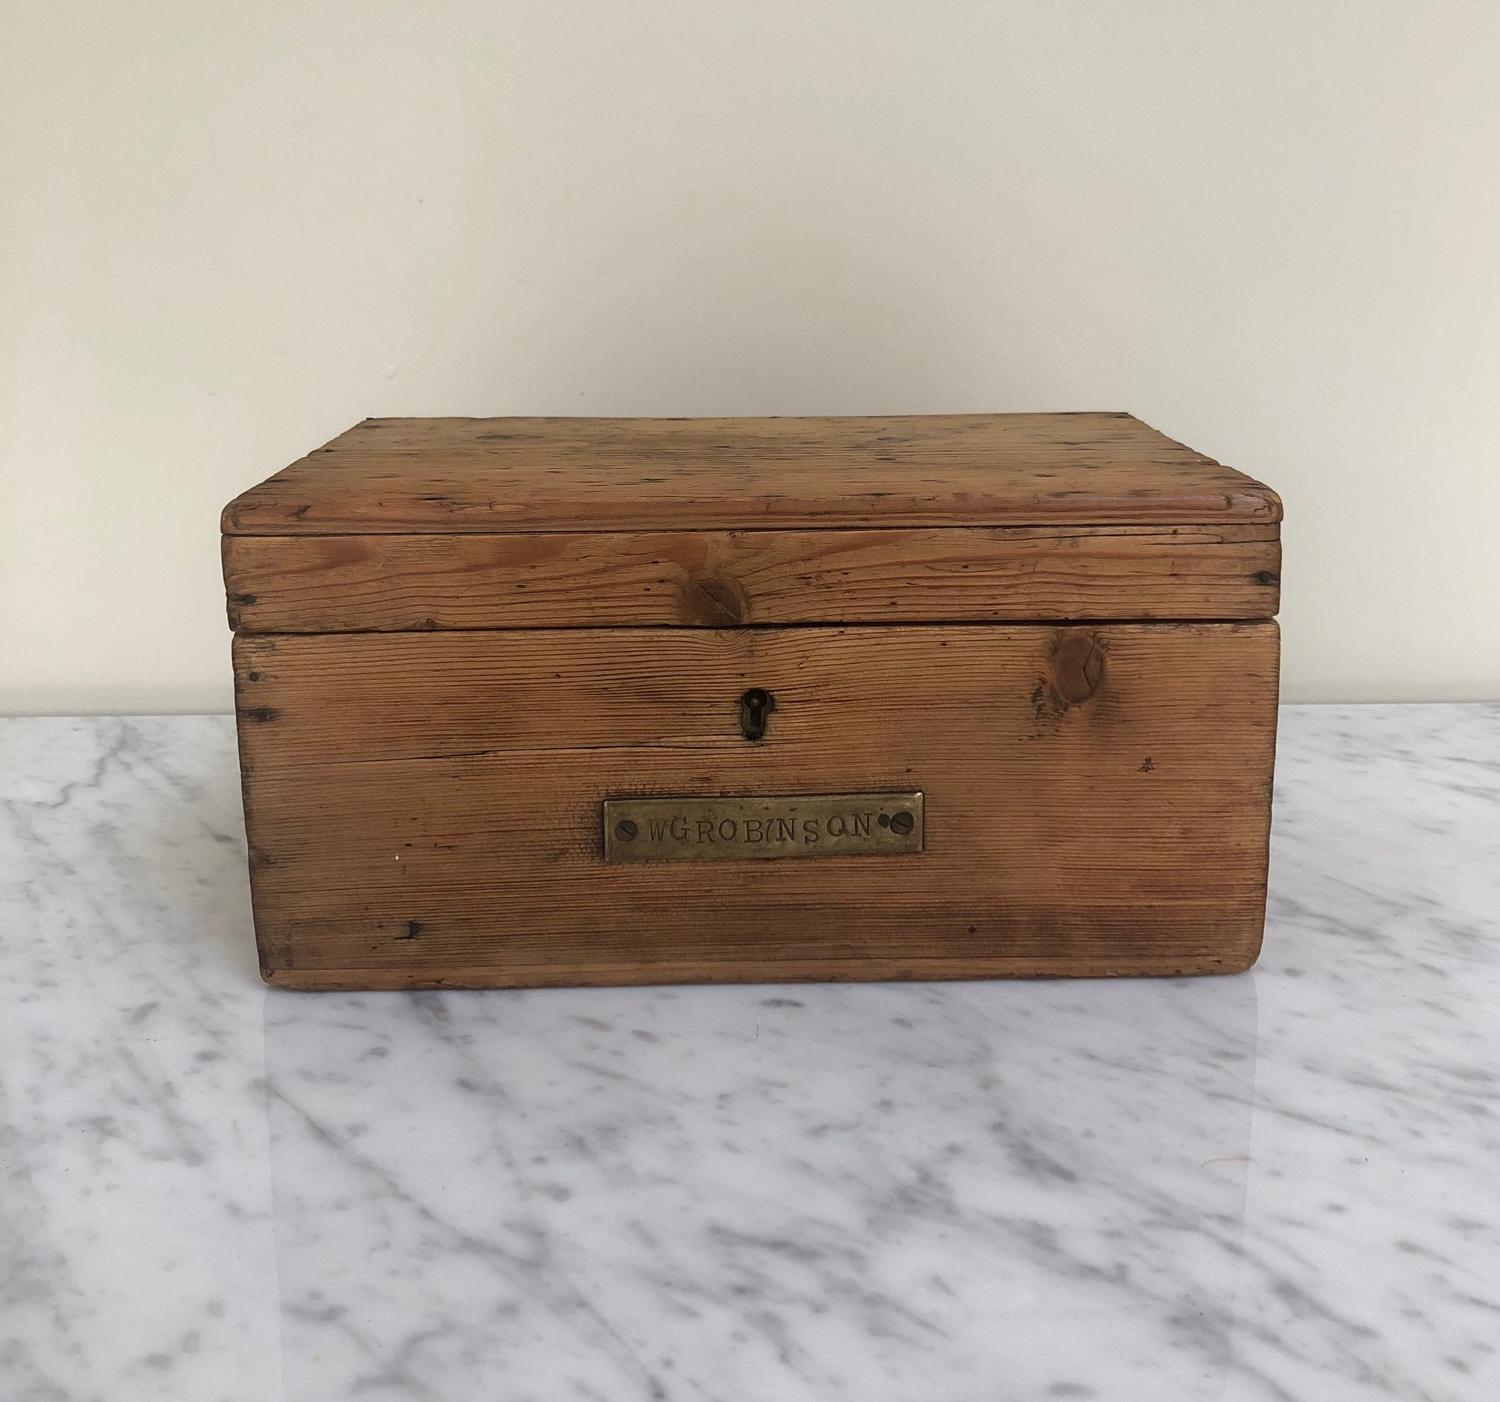 Victorian Pine Box with Brass Plaque & Working Key - GW Robinson